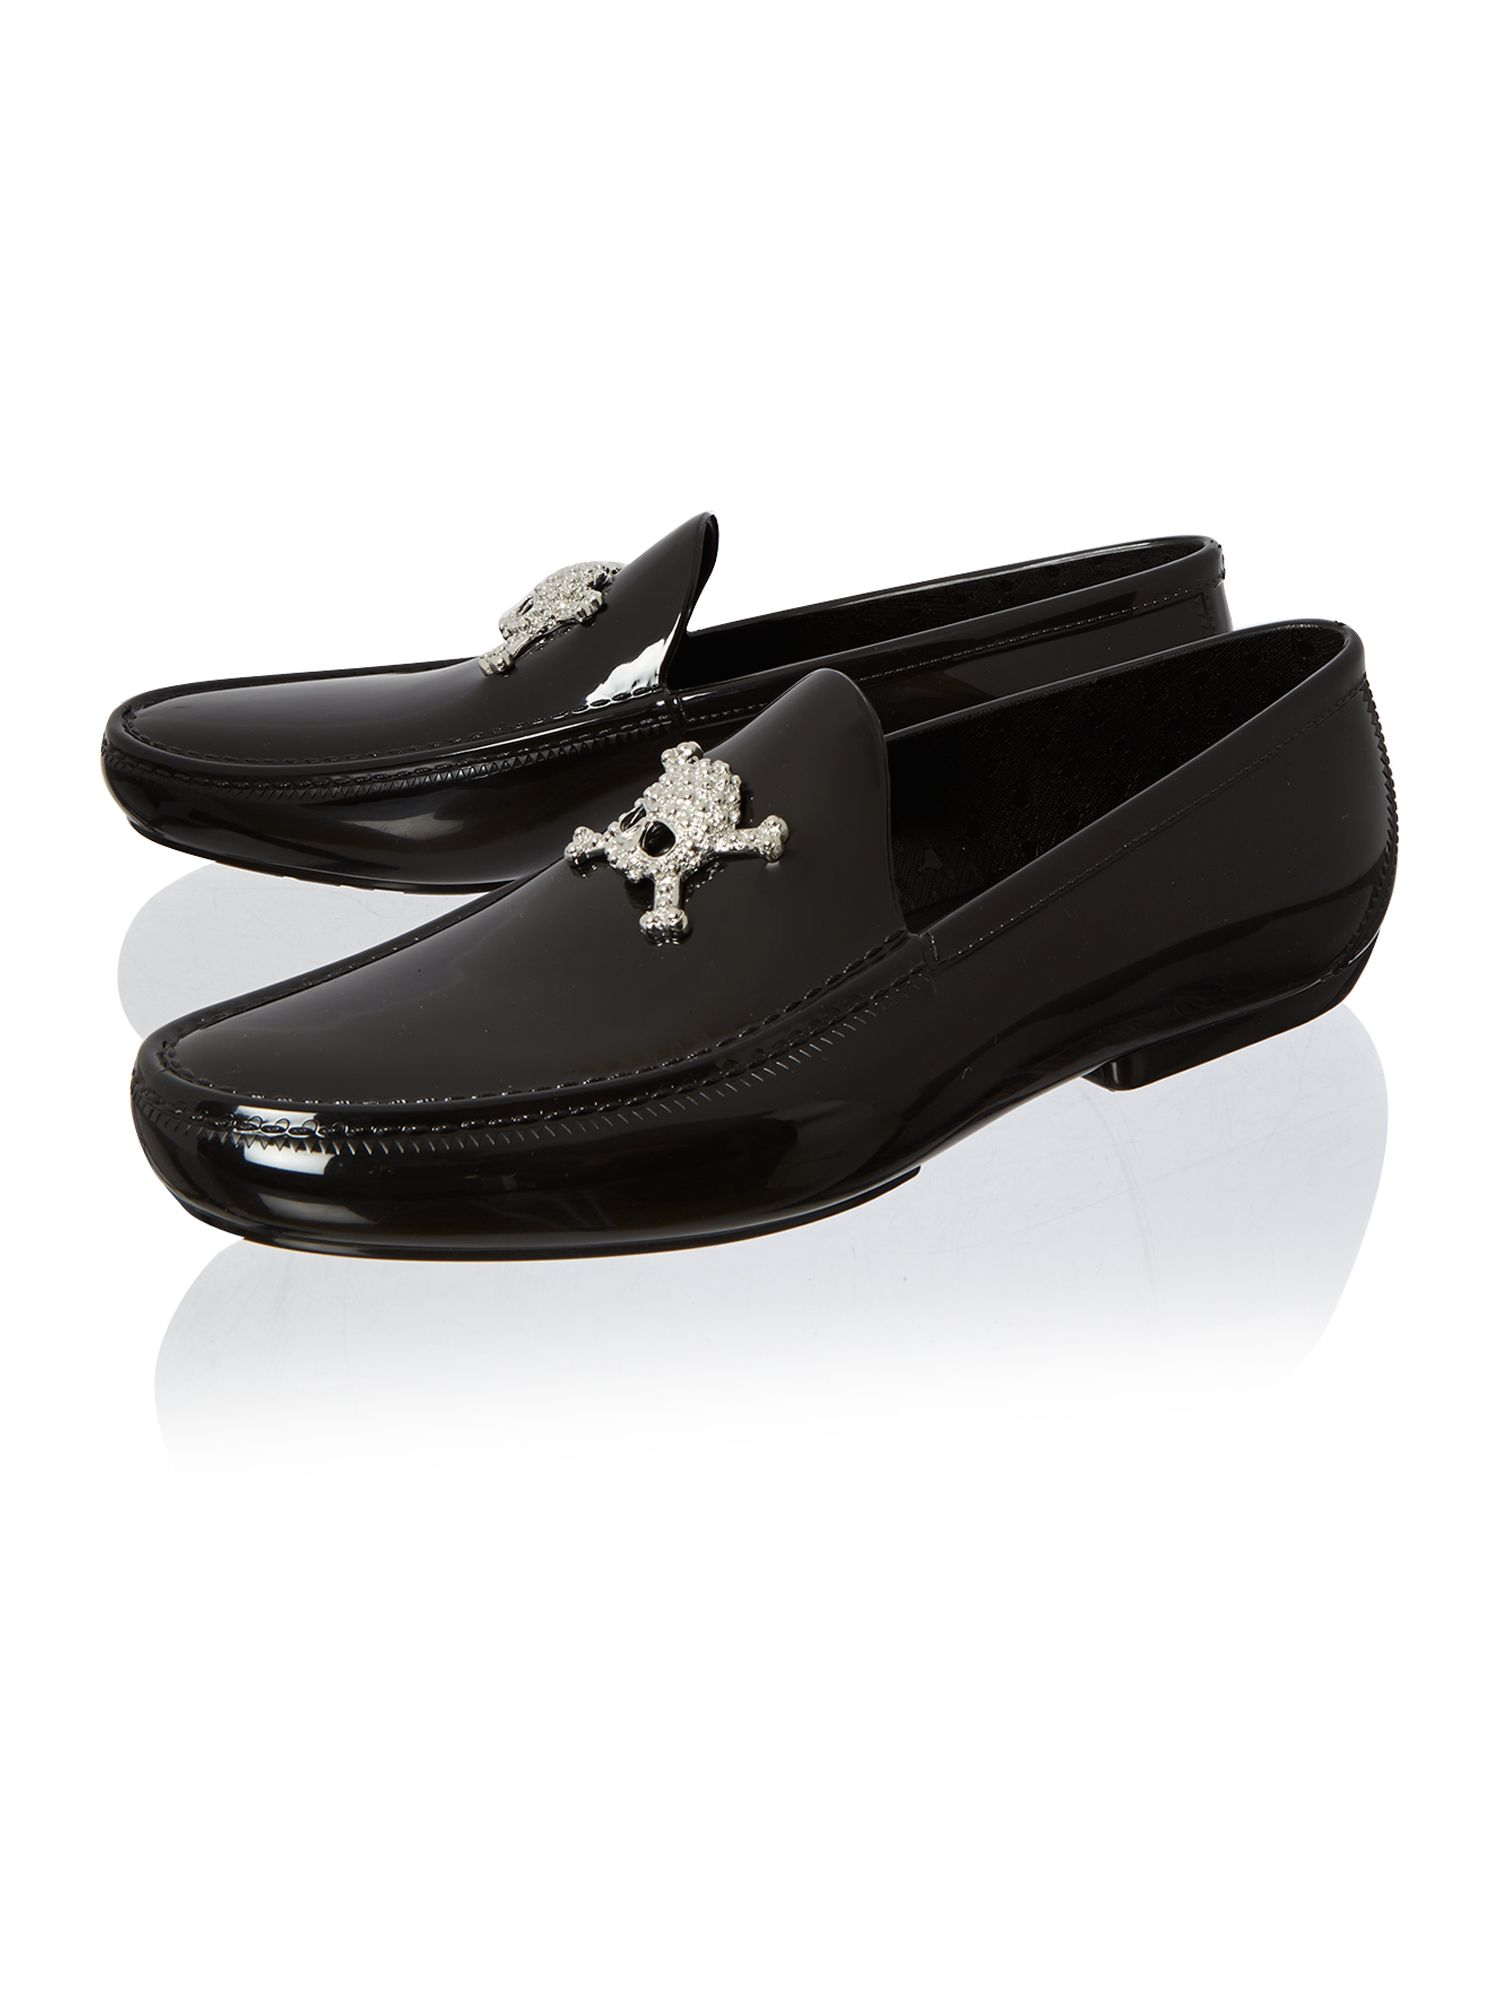 Skull moccasin shoe